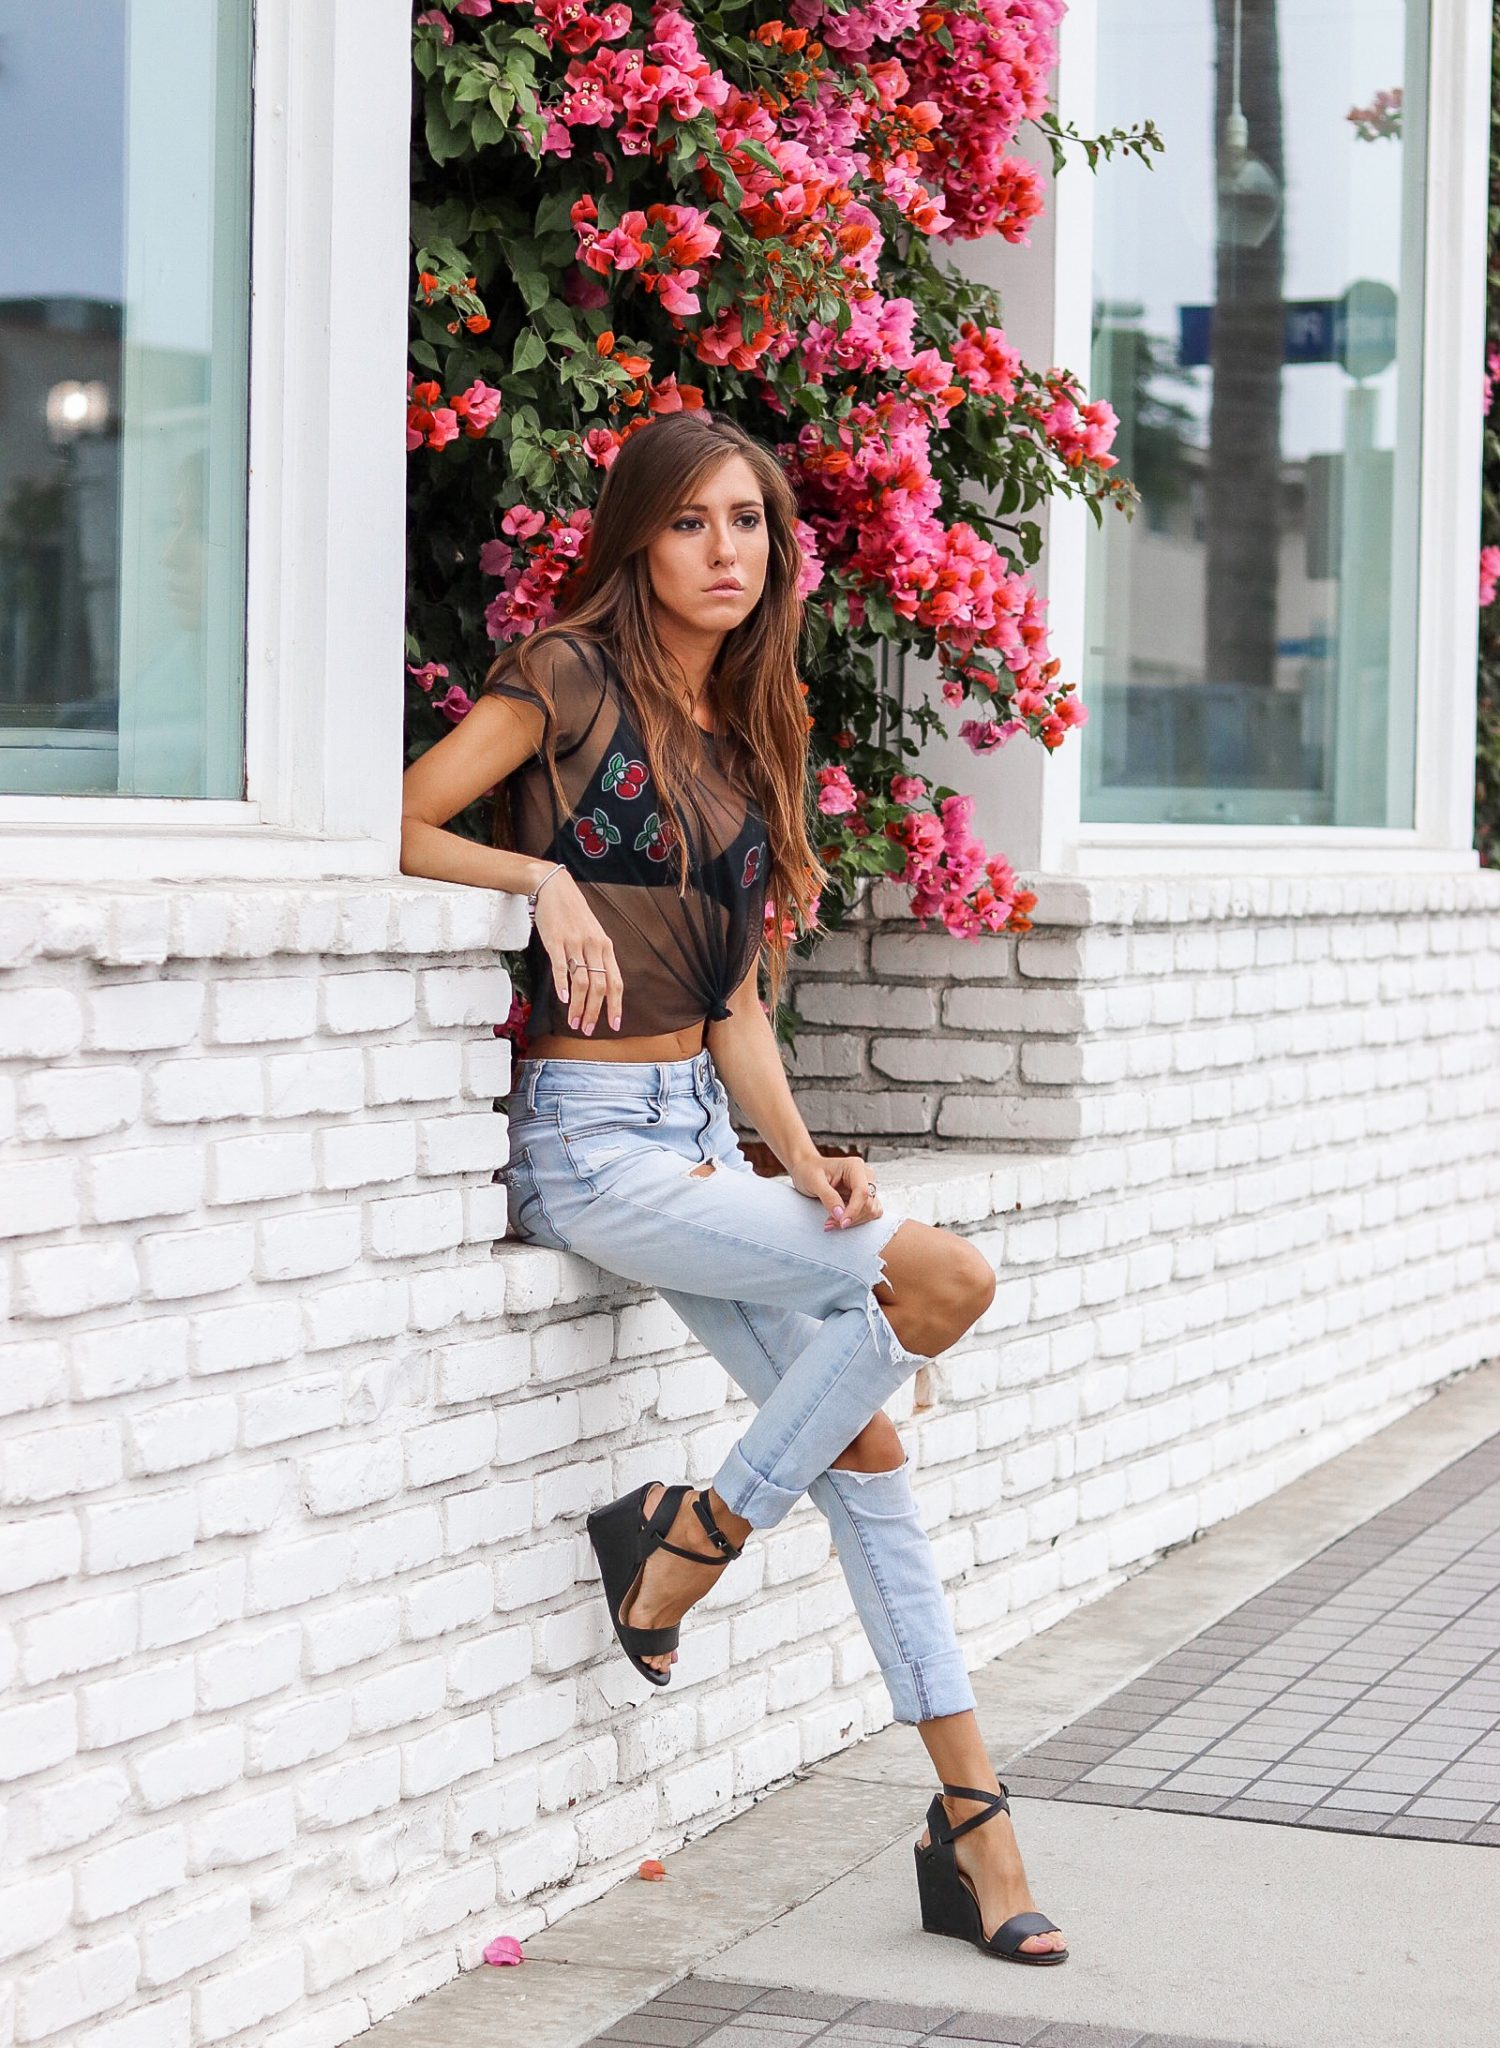 The-Hungarian-Brunette-Outfit-Inspo-OOTD-1-of-58.jpg